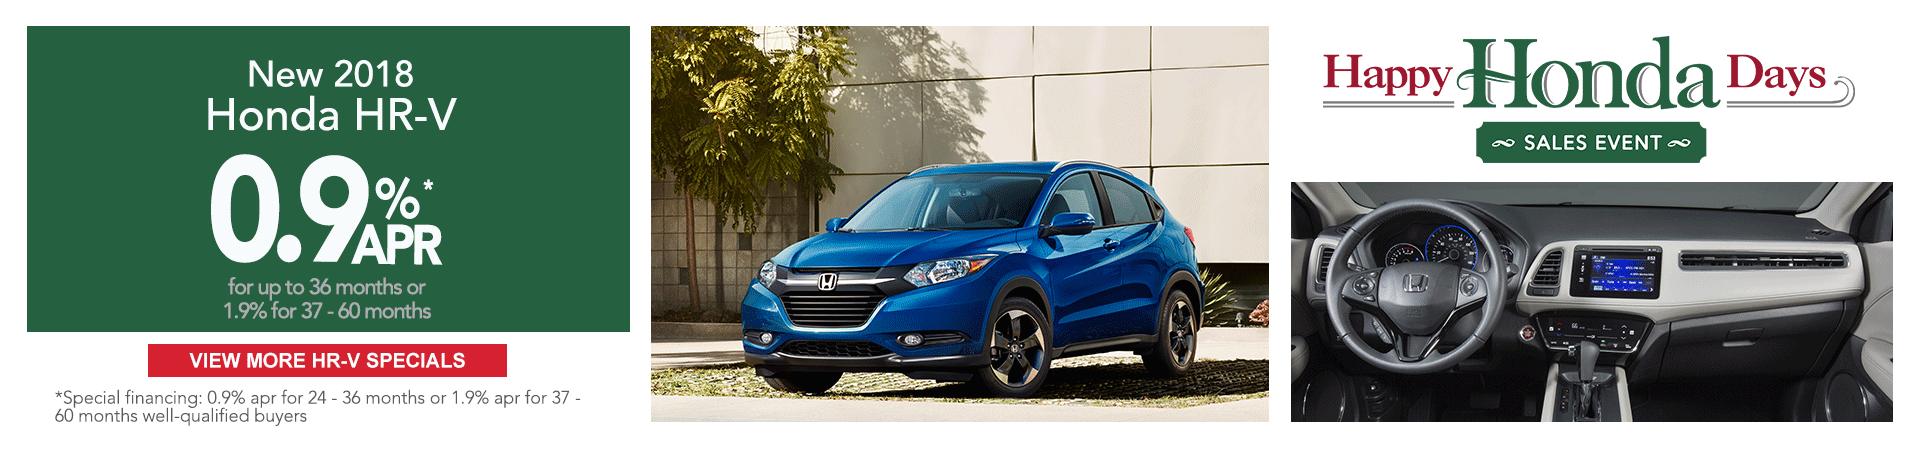 2018 Honda HR-V Happy Honda Days Sale